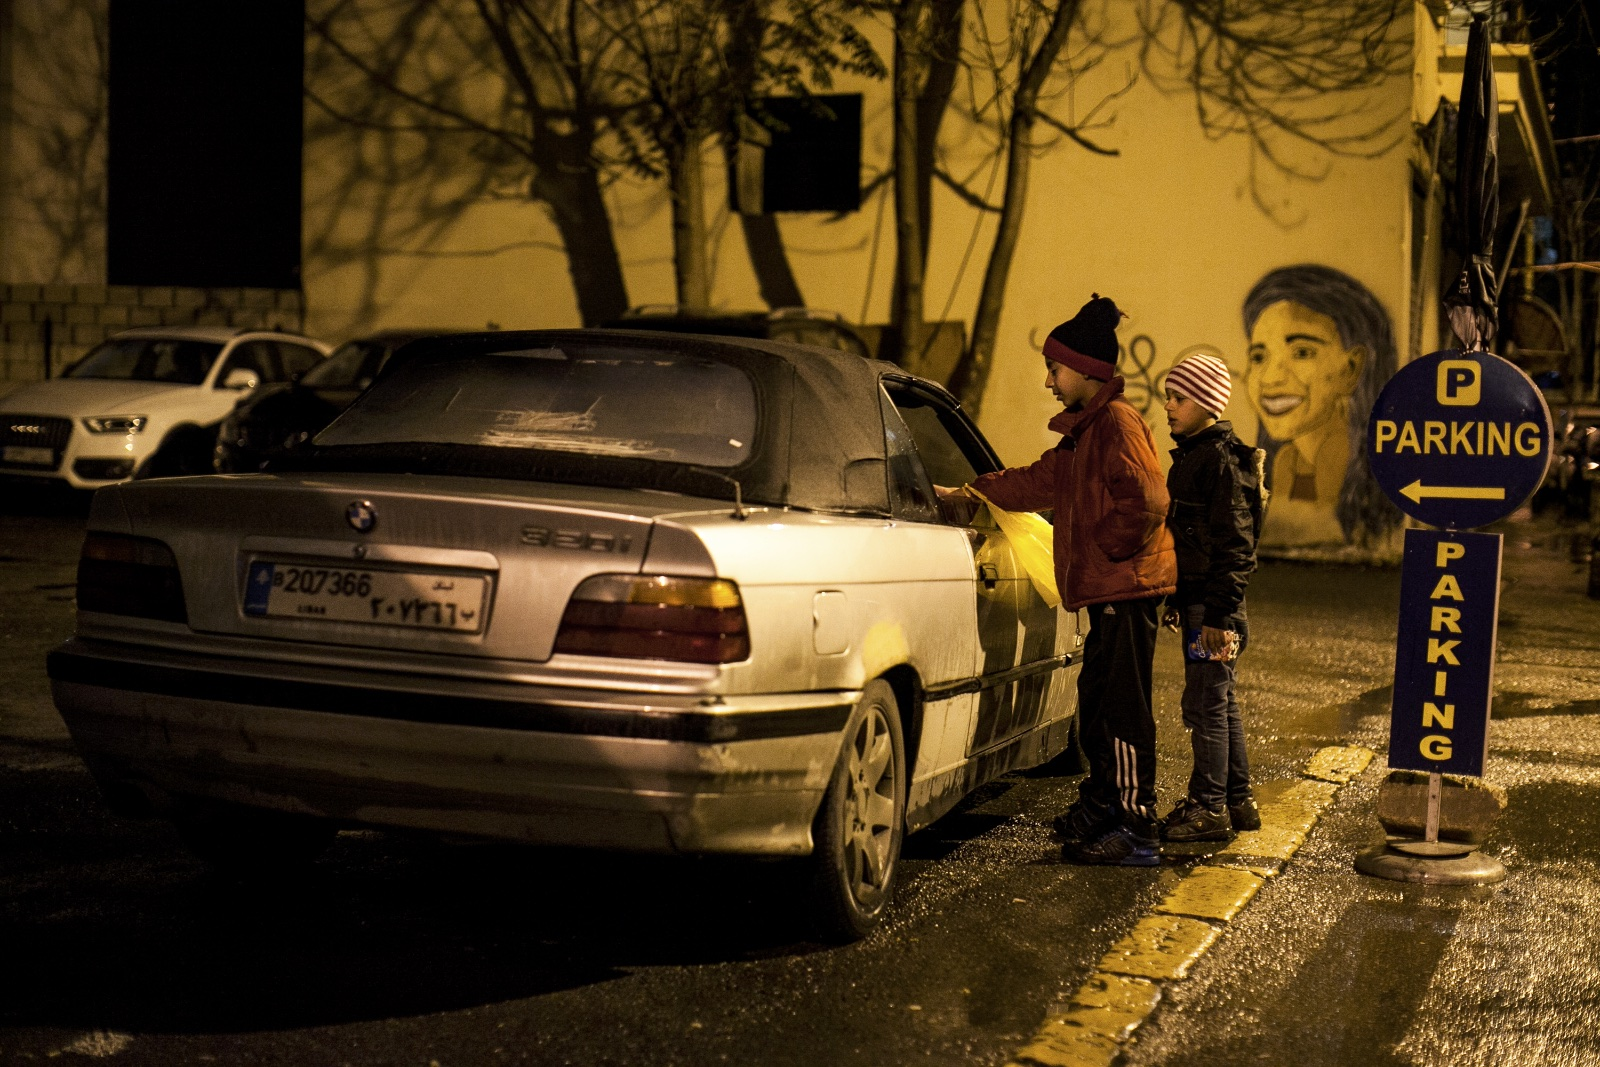 Nasar (left), 11, and his brother Ali, 9, Syrian refugees from Aleppo, approach a car near Hamra Street in Beirut, attempting to sell packages of peanuts. Among the 1.8 million Syrian refugees in Lebanon, women and children remain the most vulnerable. (Christopher Lee/GroundTruth)